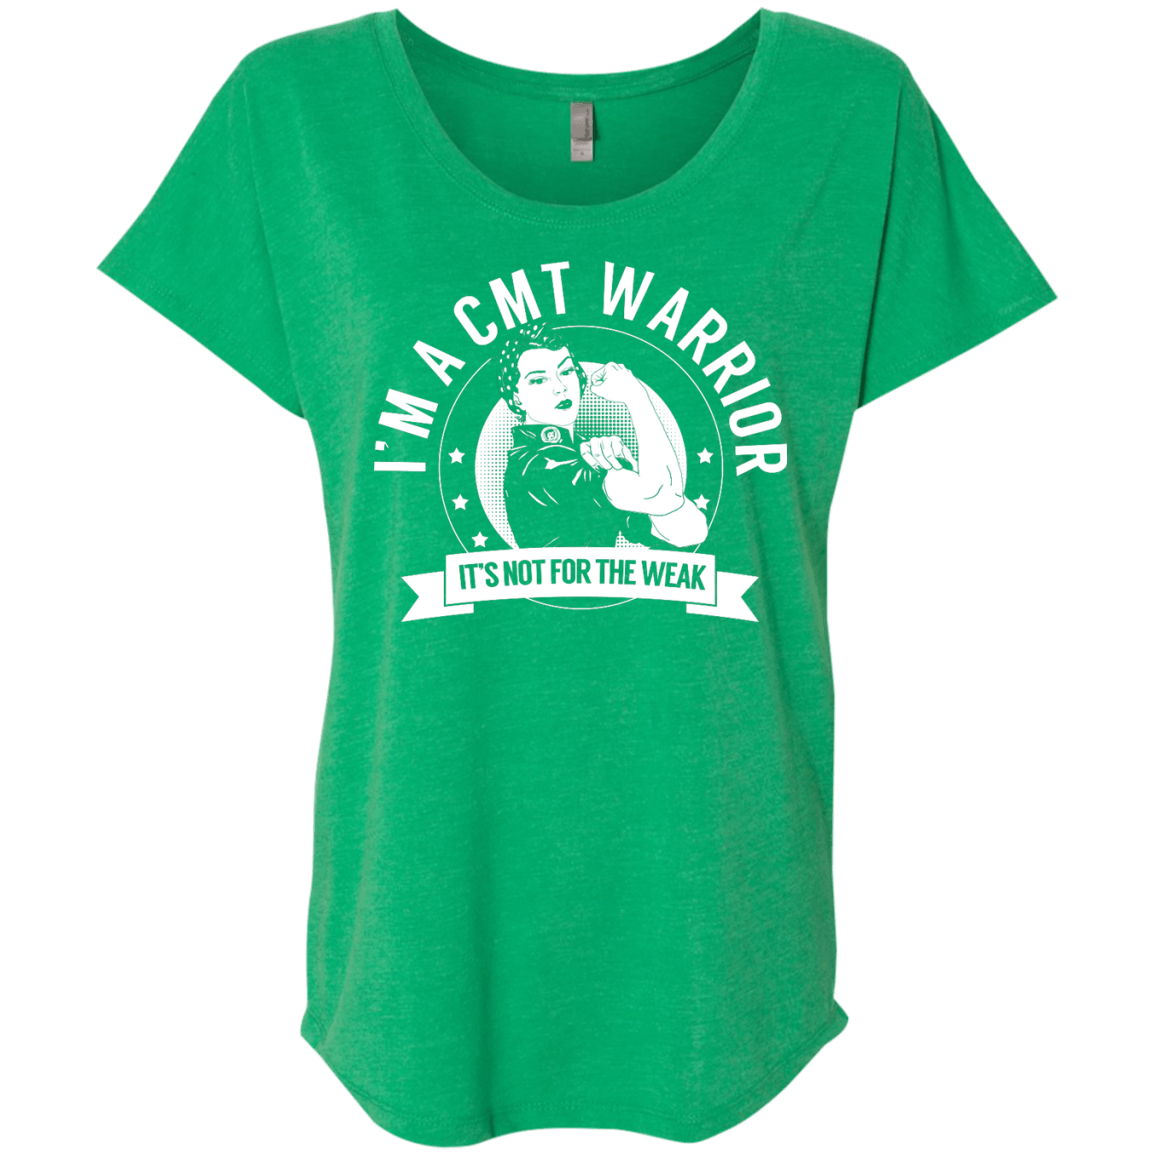 Charcot-Marie-Tooth Disease - CMT Warrior Not For The Weak Dolman Sleeve - The Unchargeables